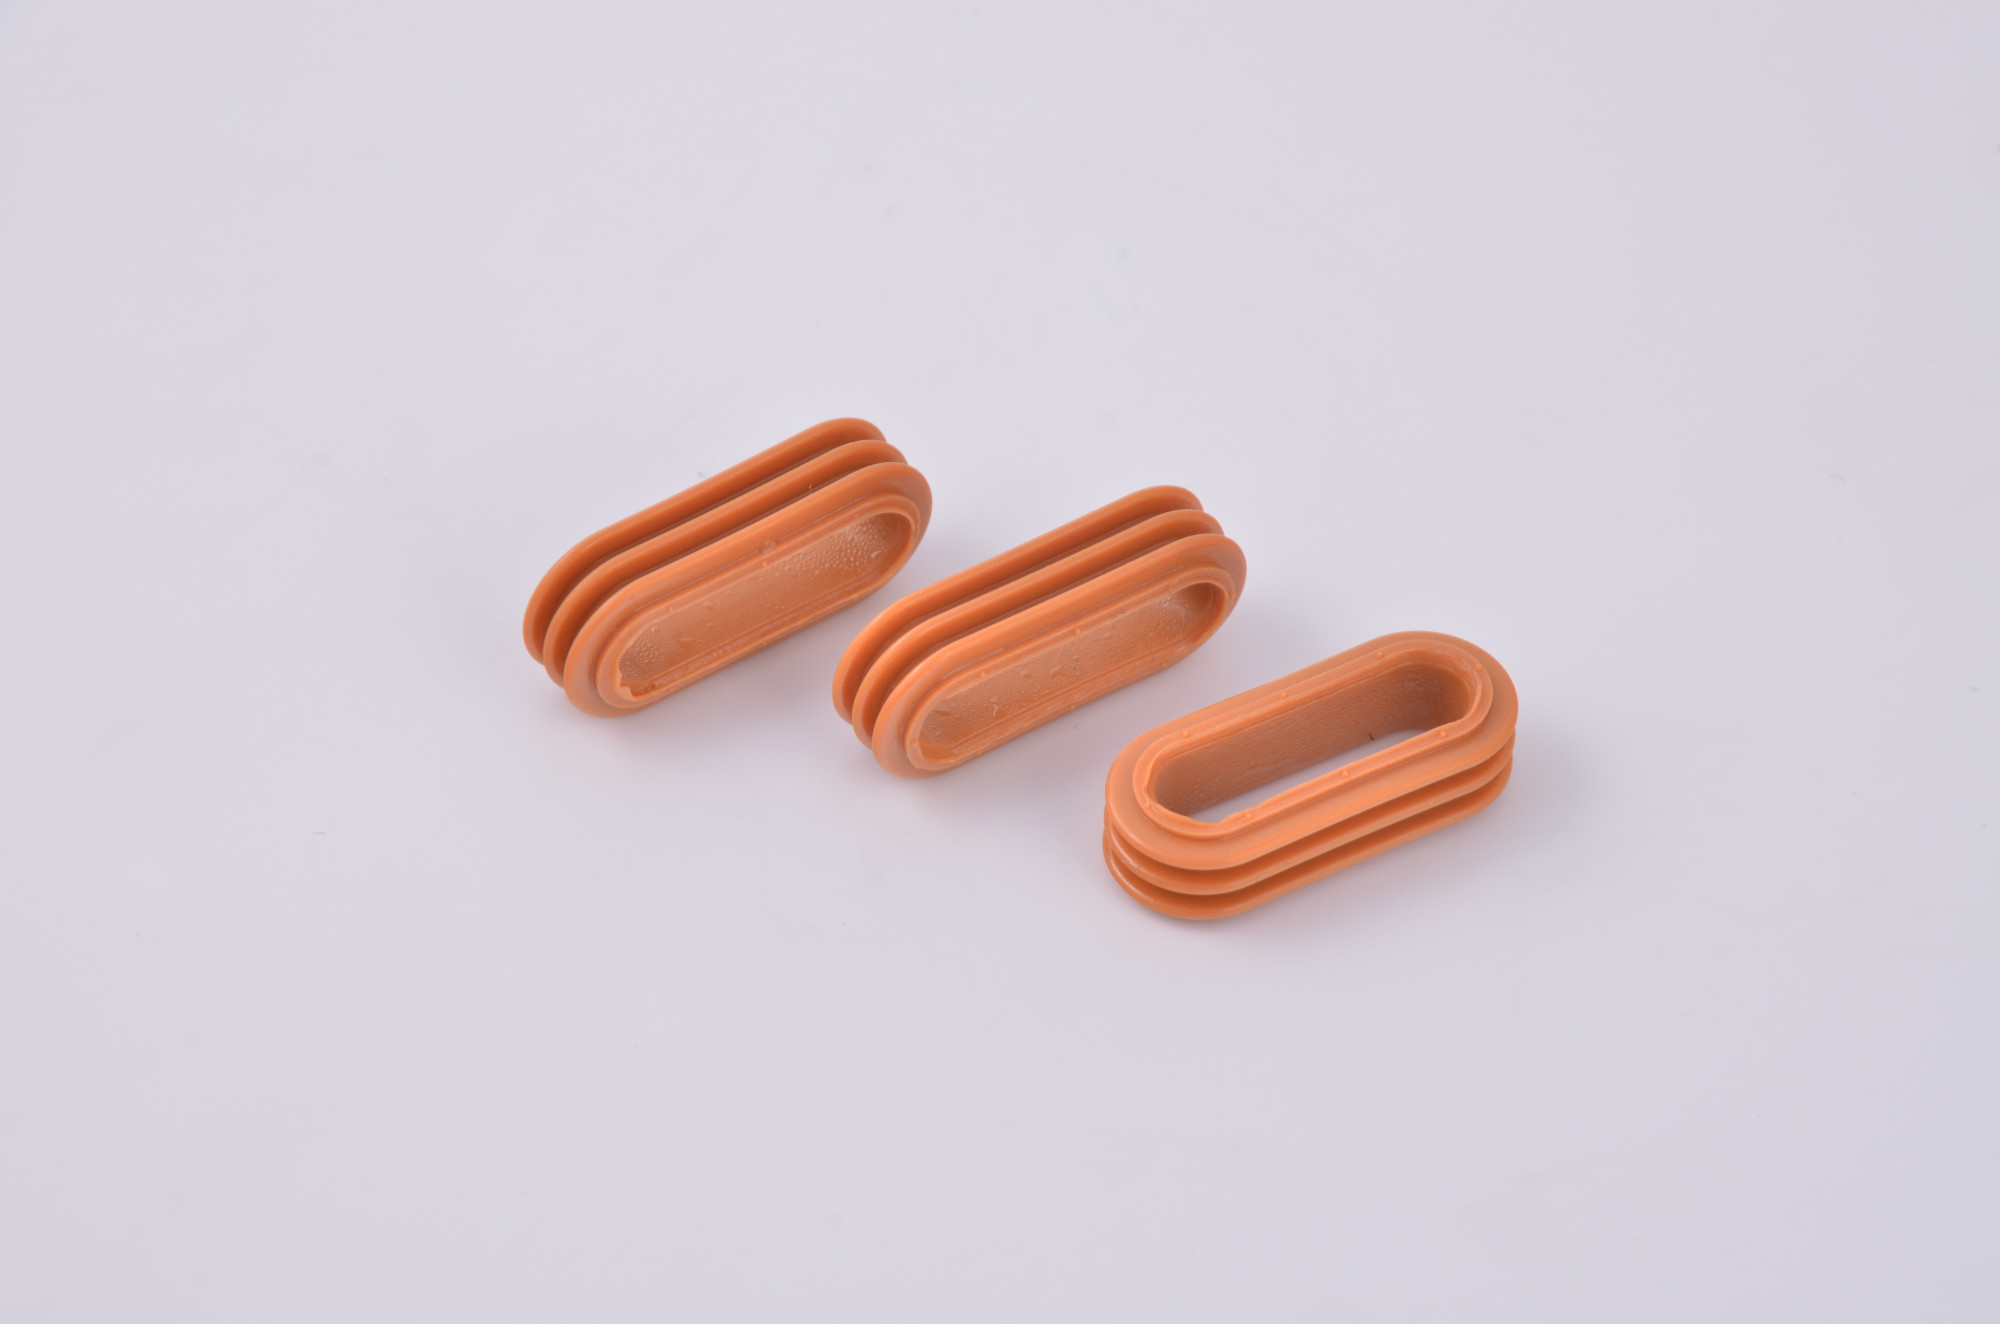 Straight shape rubber parts Manufacturers, Straight shape rubber parts Factory, Straight shape rubber parts